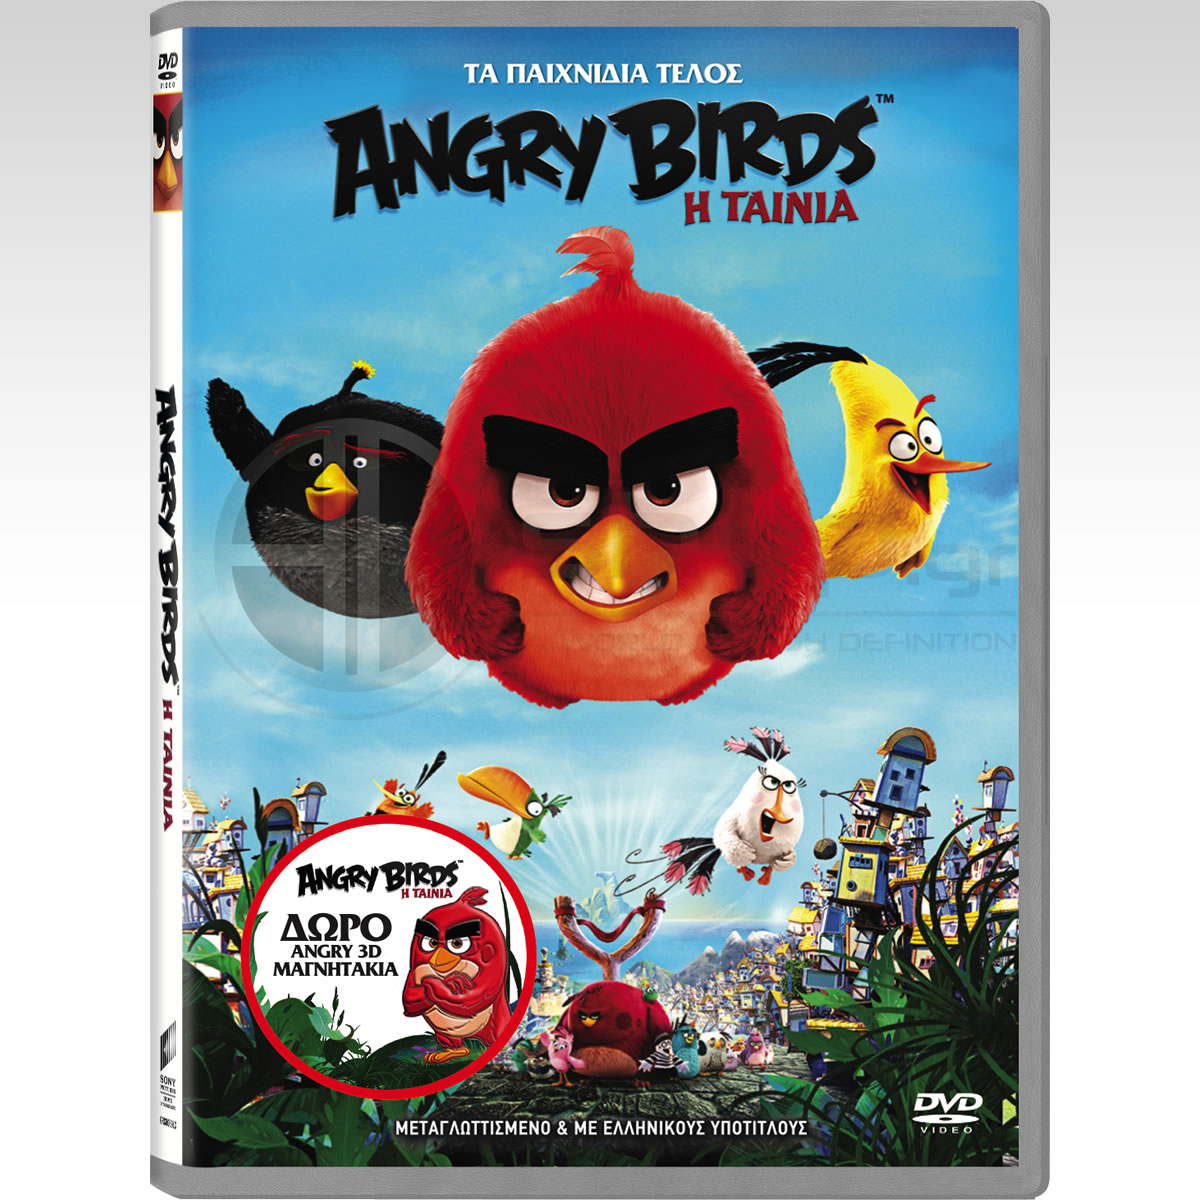 ANGRY BIRDS: THE MOVIE - ANGRY BIRDS: Η ΤΑΙΝΙΑ + ΔΩΡΟ ΜΑΓΝΗΤΑΚΙΑ Limited Special Edition (DVD) & ΜΕΤΑΓΛΩΤΤΙΣΜΕΝΟ ΣΤΑ ΕΛΛΗΝΙΚΑ